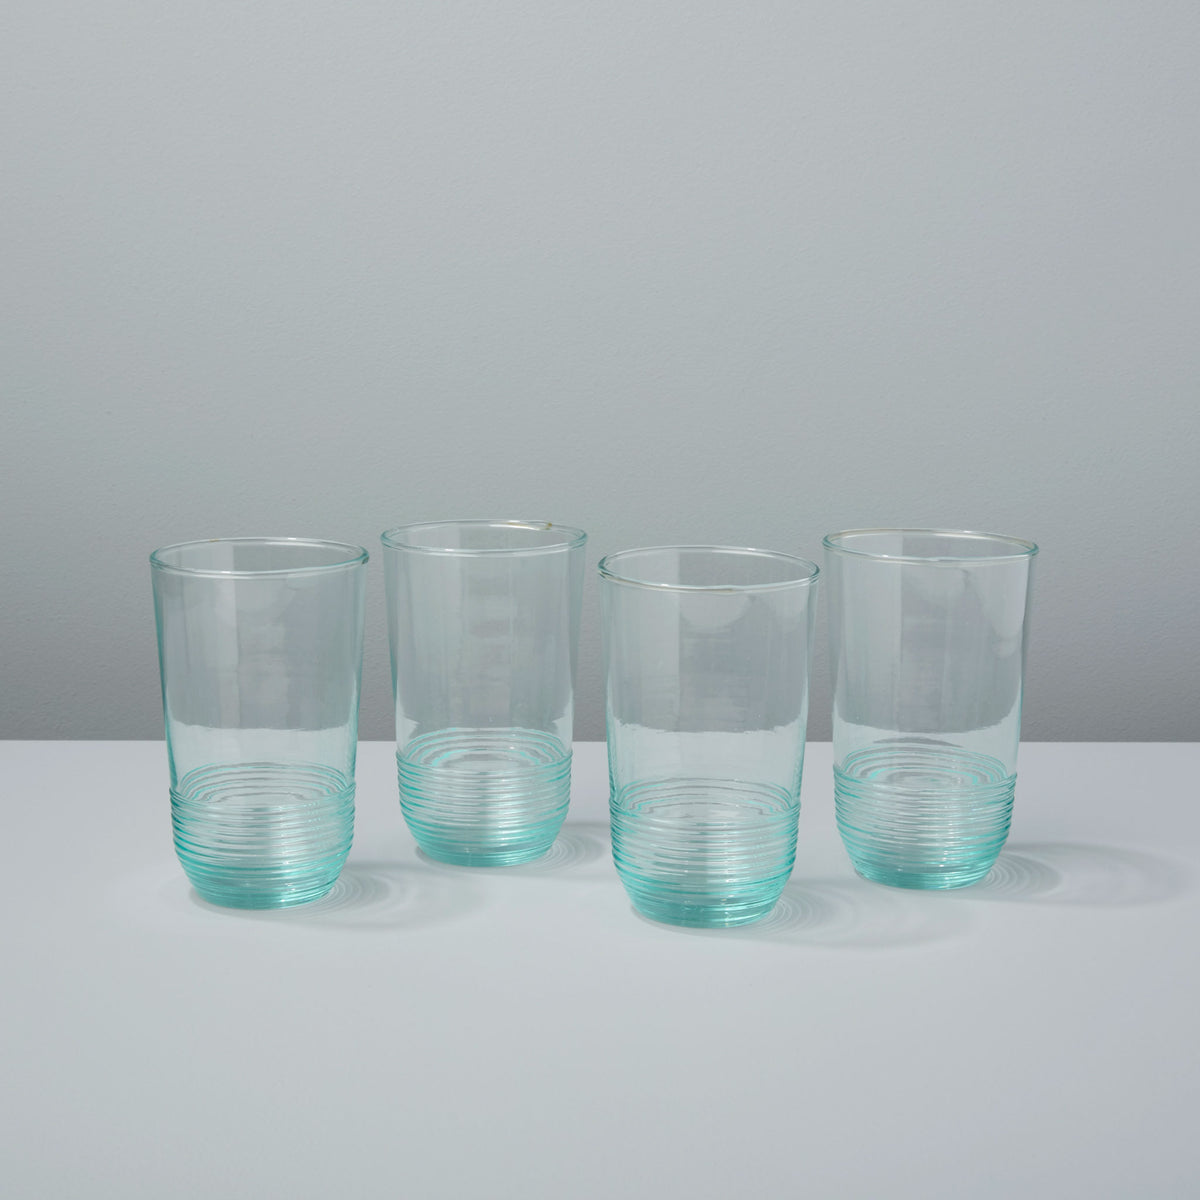 Premium Recycled Glass Ripple Tumbler, Tall Set of 4